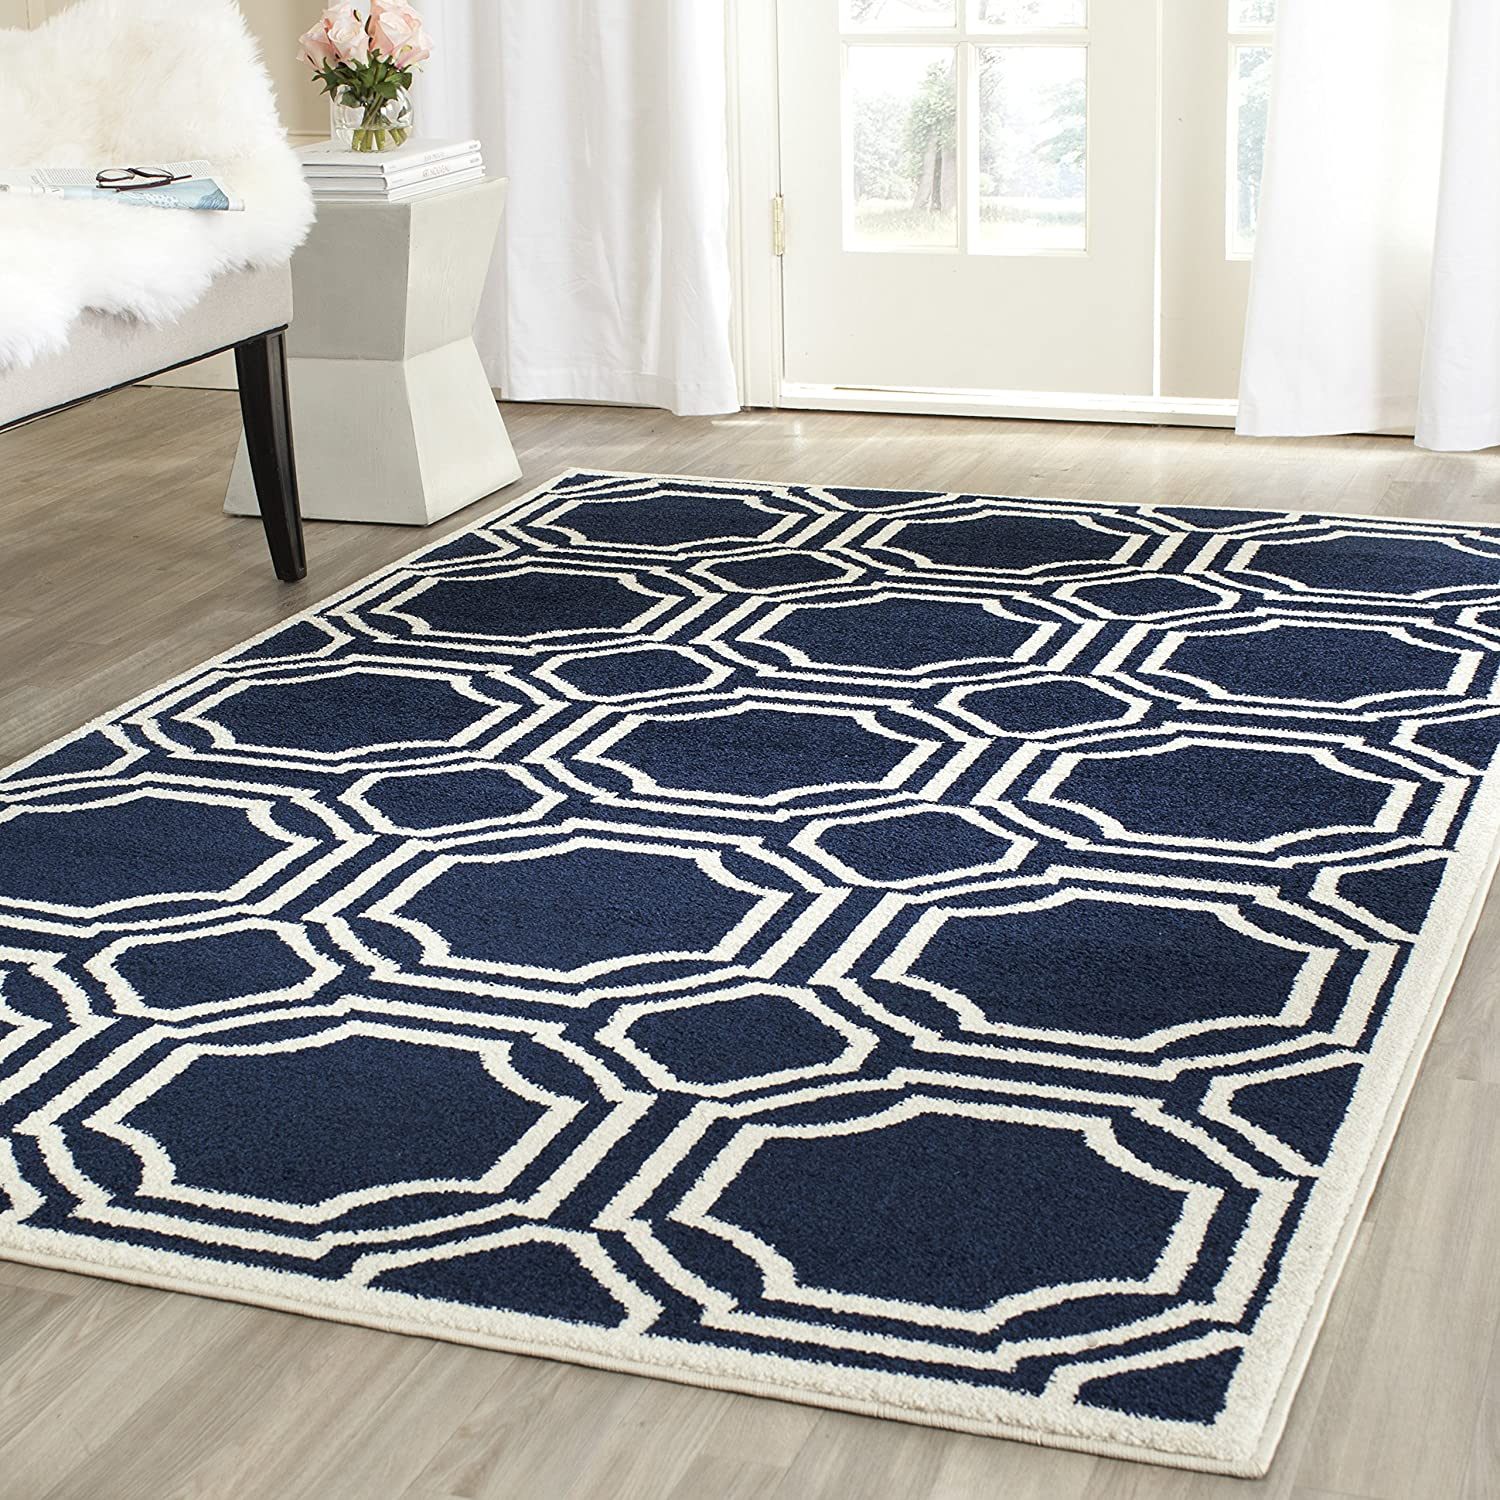 Amazon Com Safavieh Amherst Collection Amt411p Navy And Ivory